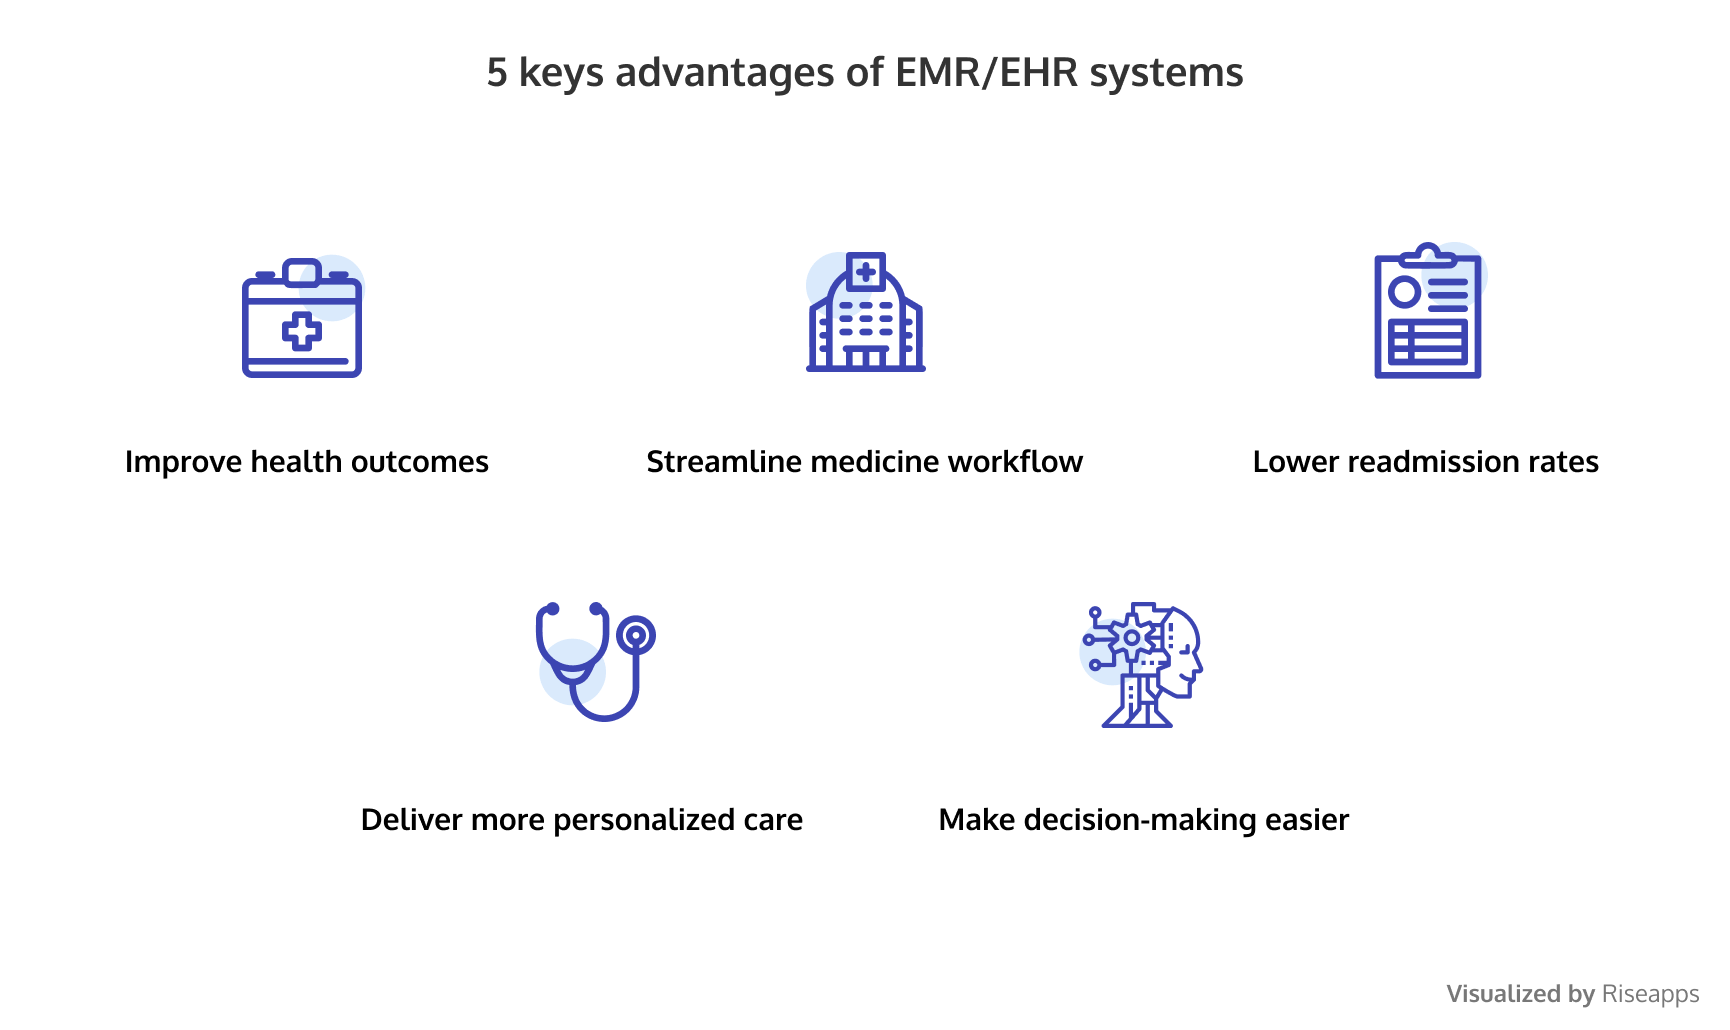 advantages of EMR and EHR systems for healthcare